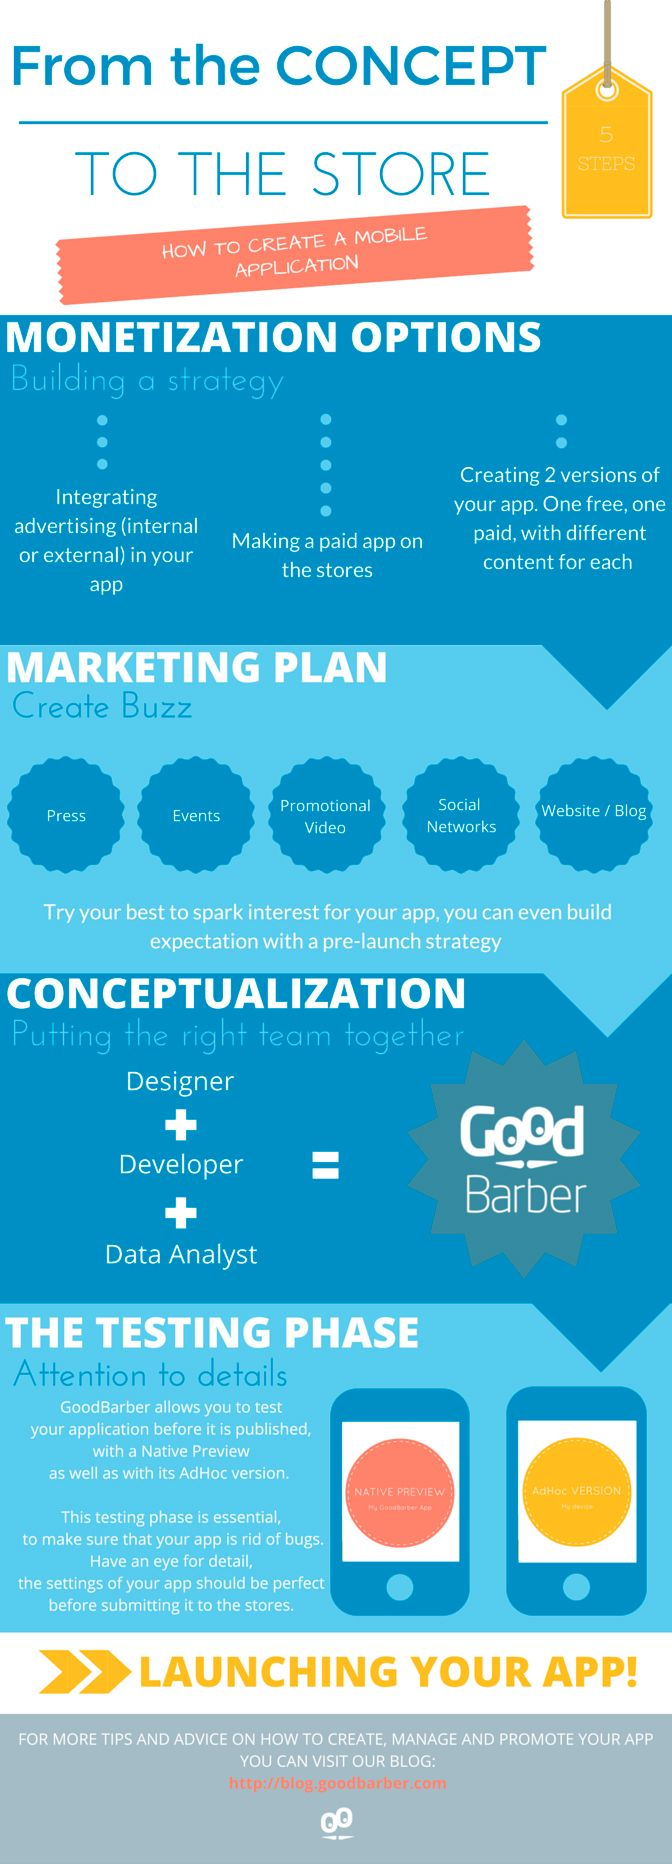 [ Infographic ] Creating a mobile App for the first time? #Infographic #mobileapp #marketing #strategy #monetization